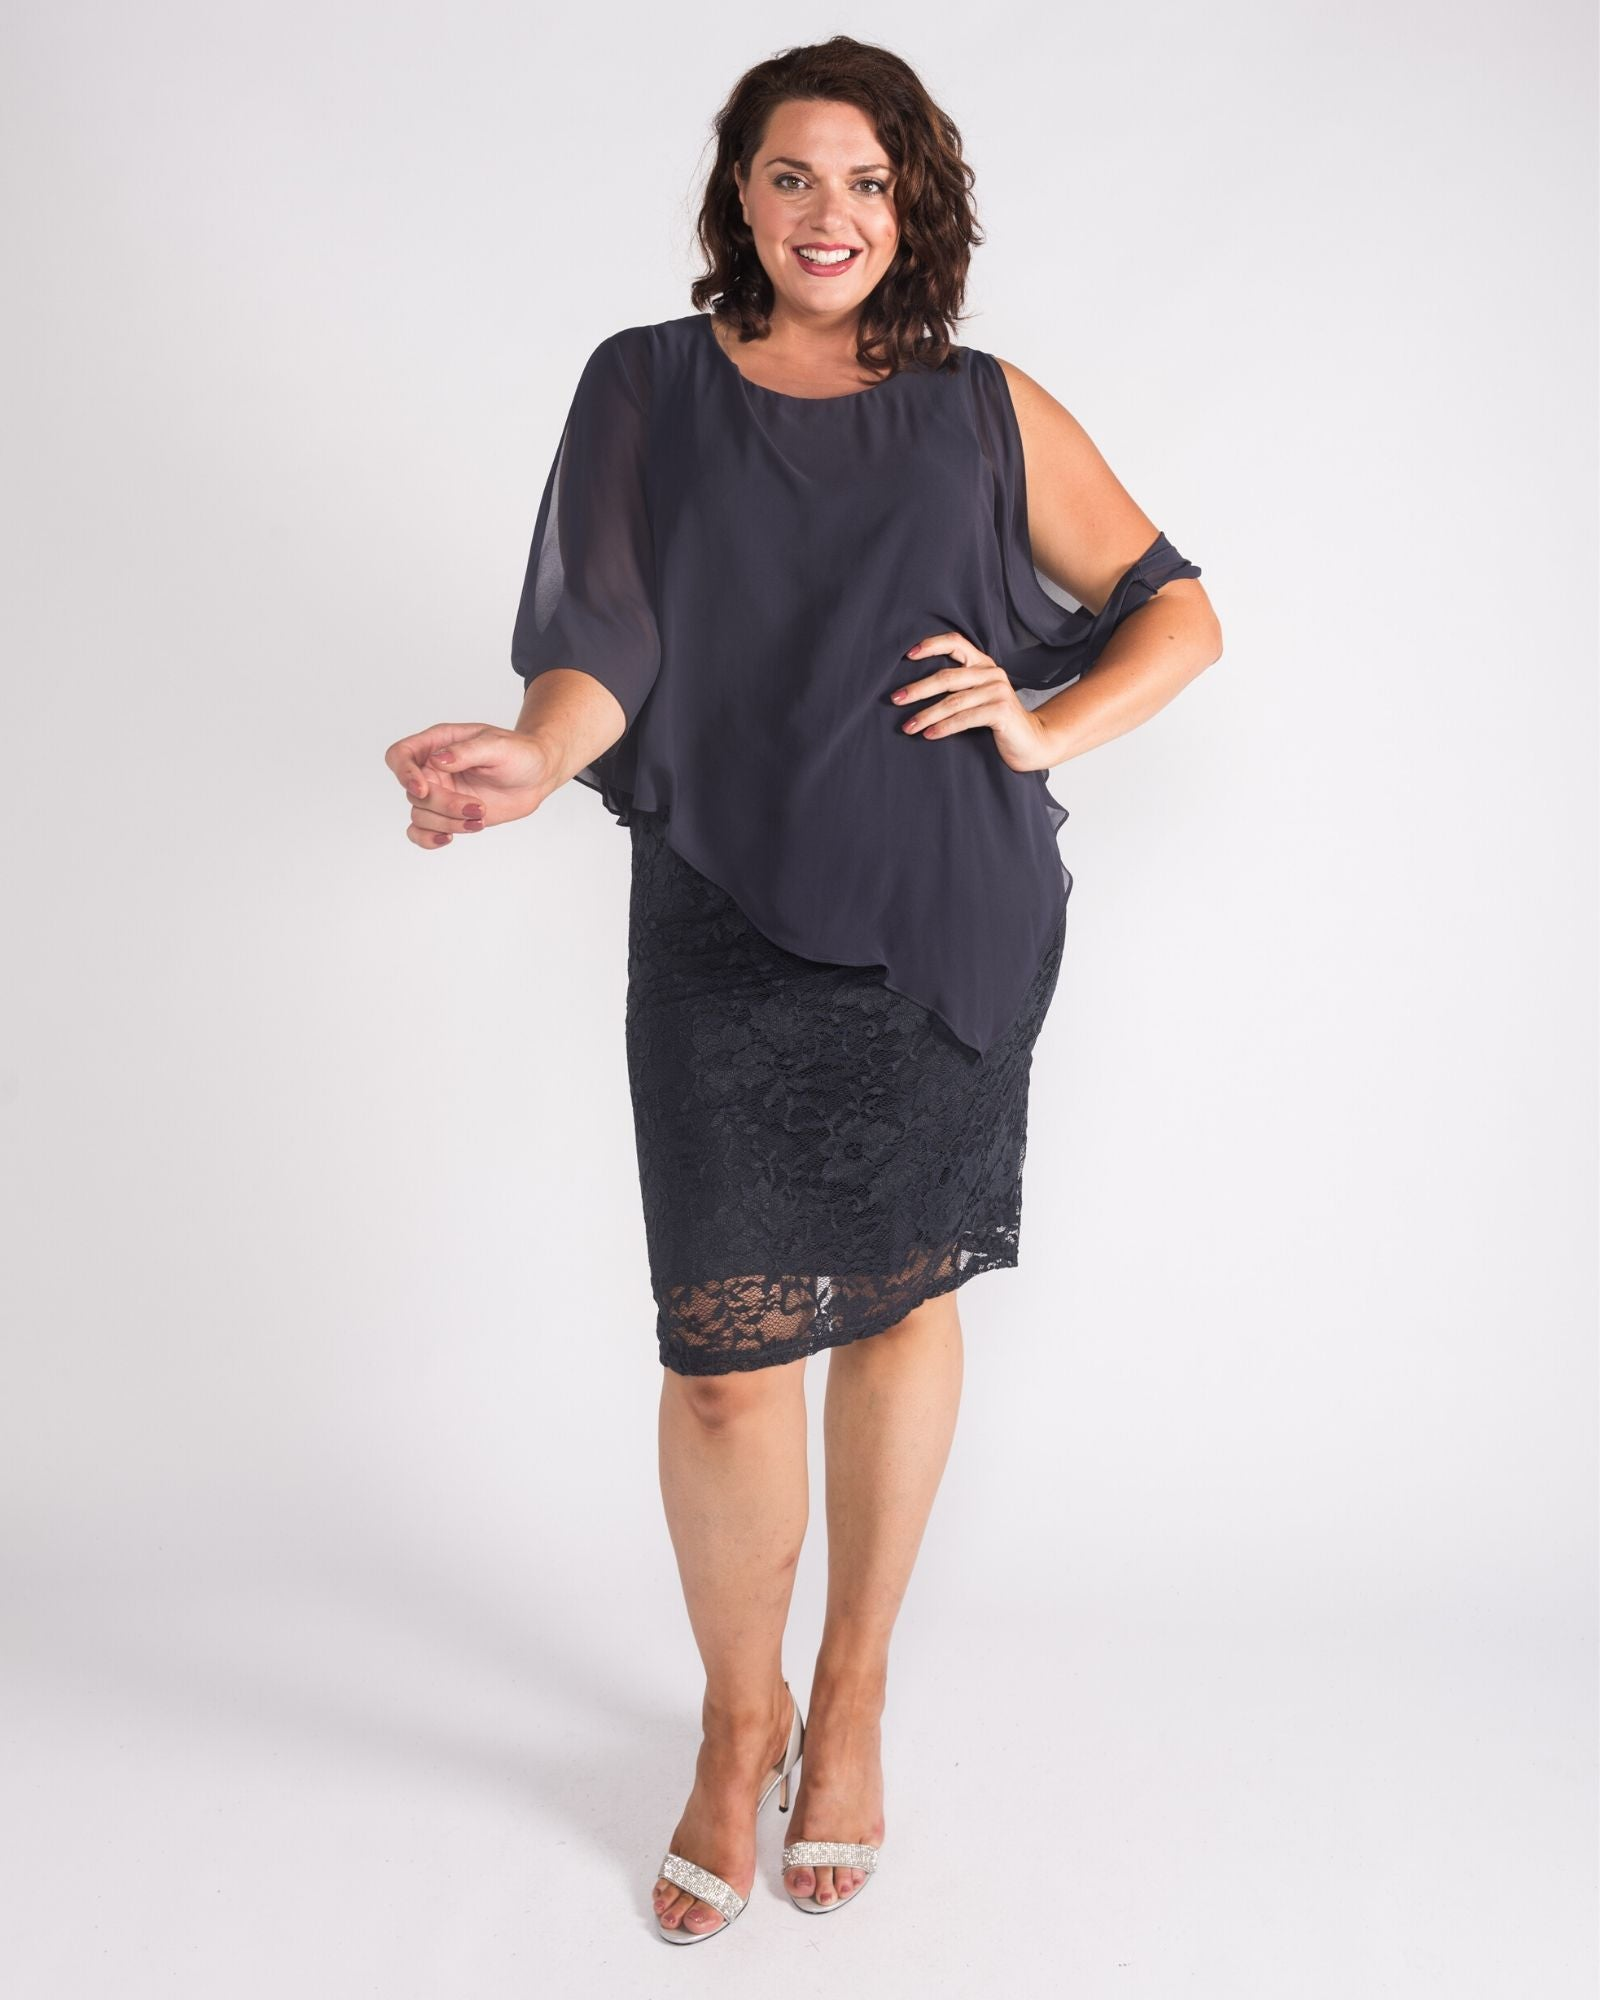 Michelle Lace dress charcoal size 20,24,26